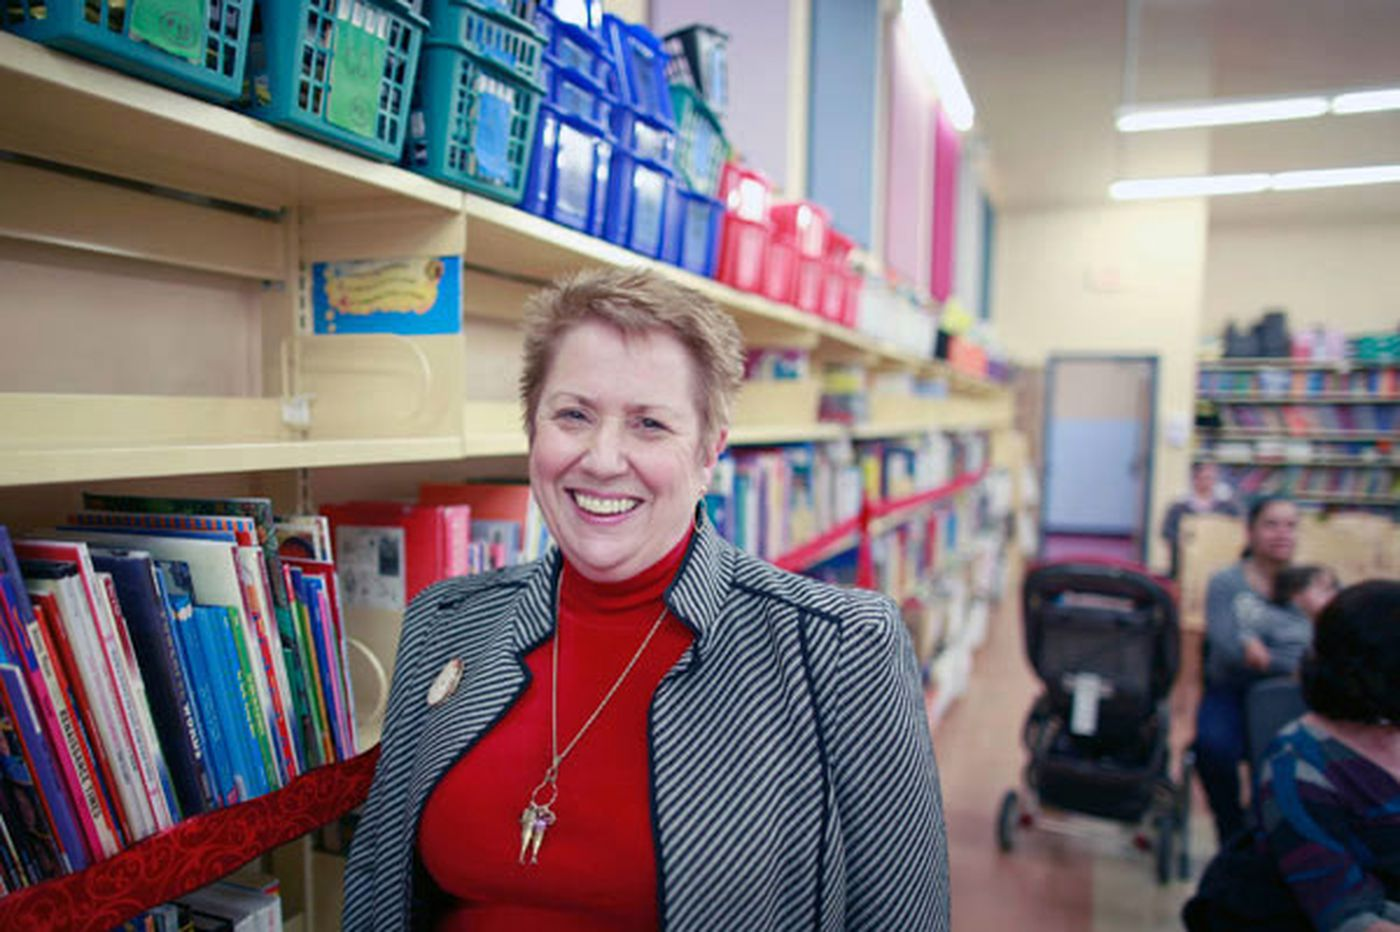 Chestnut Hill College professor's mission: Get books on school library shelves